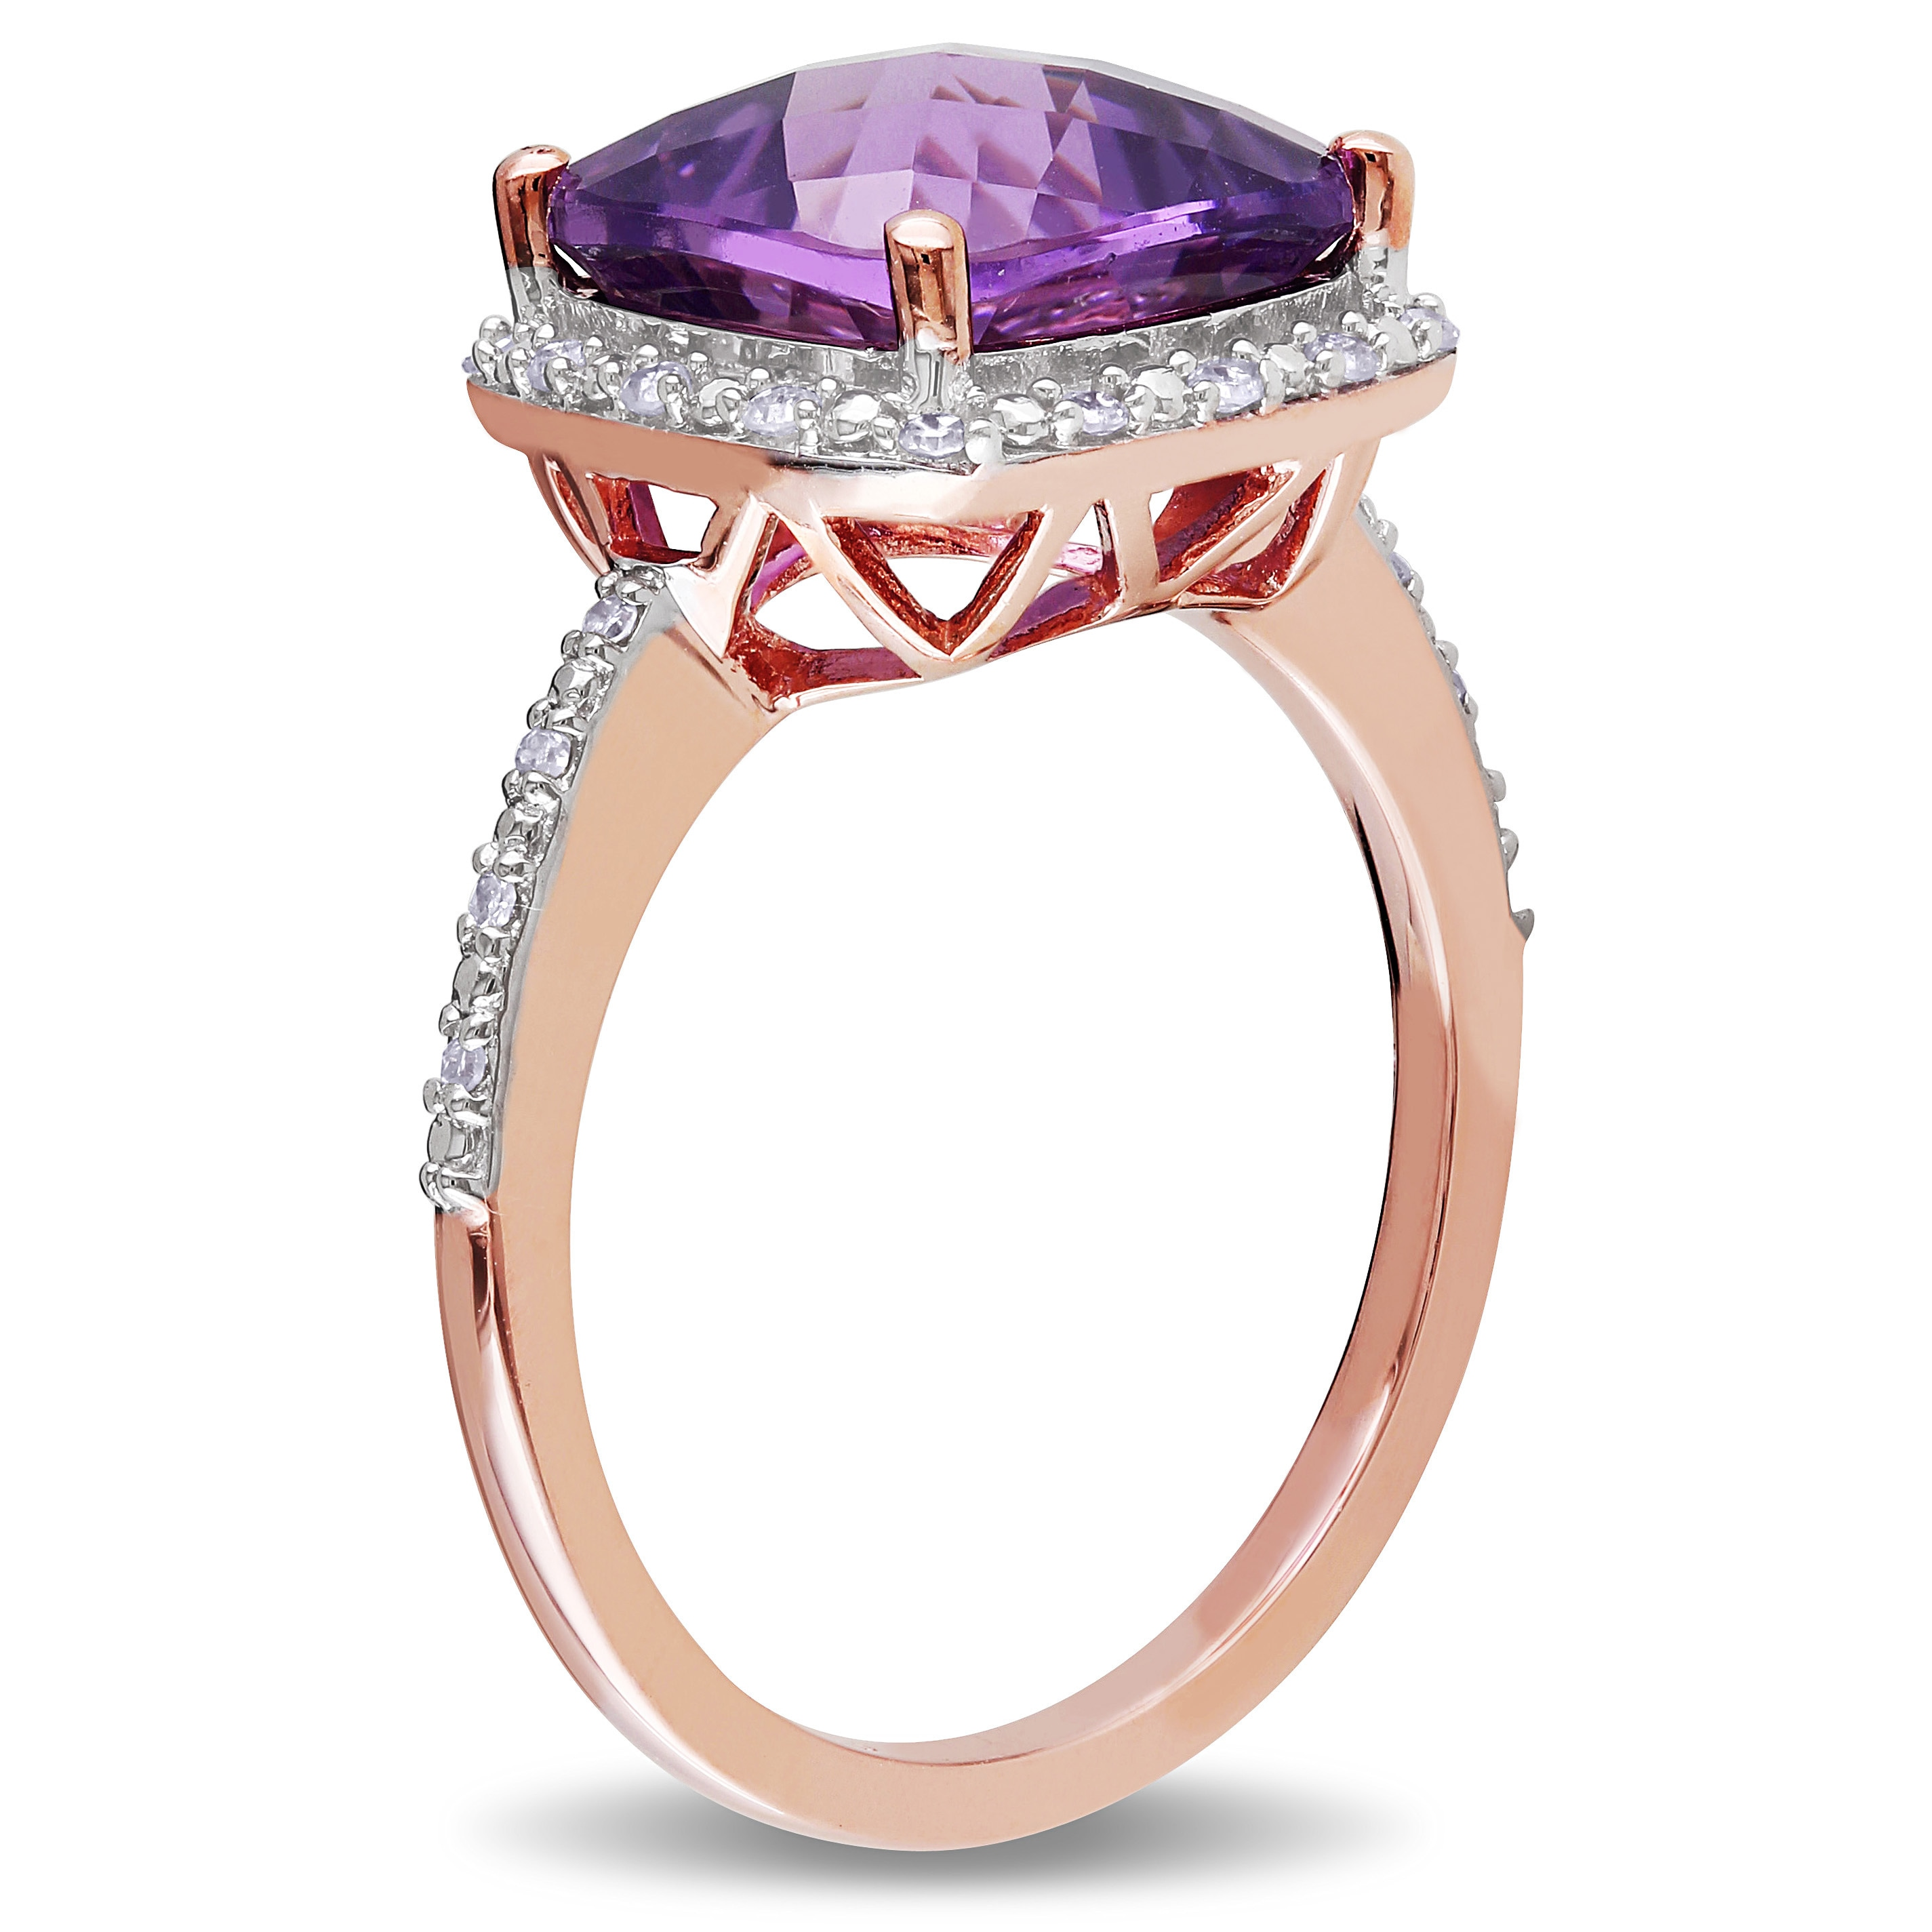 rings lane art products amethist butter deco solitaire carat siberian amethyst engagement ring